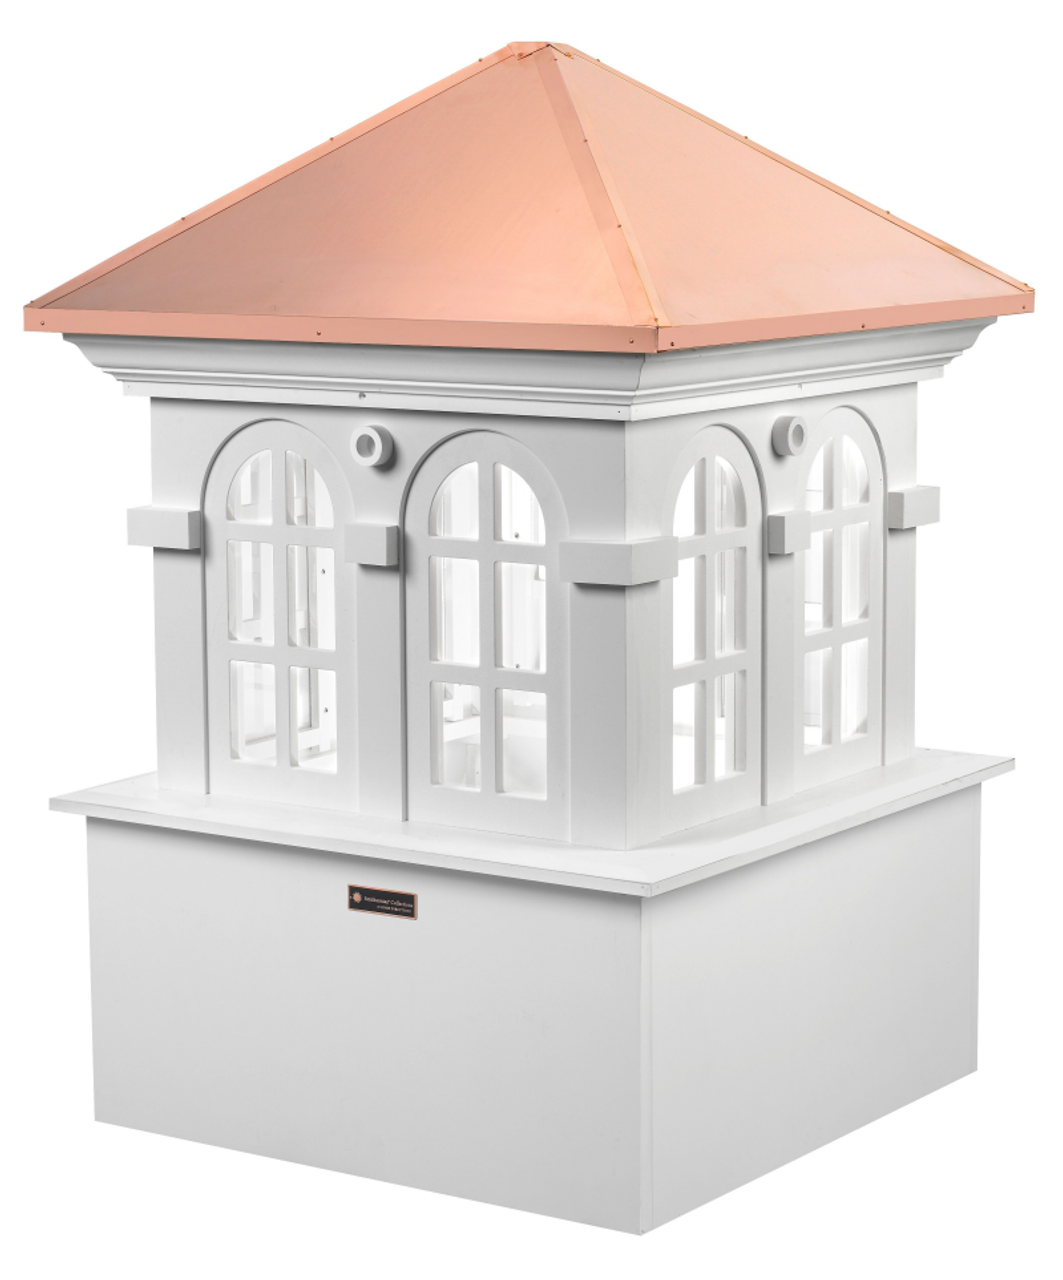 Good Directions Smithsonian Vinyl Chesapeake Cupola - 30in. square x 45in. high